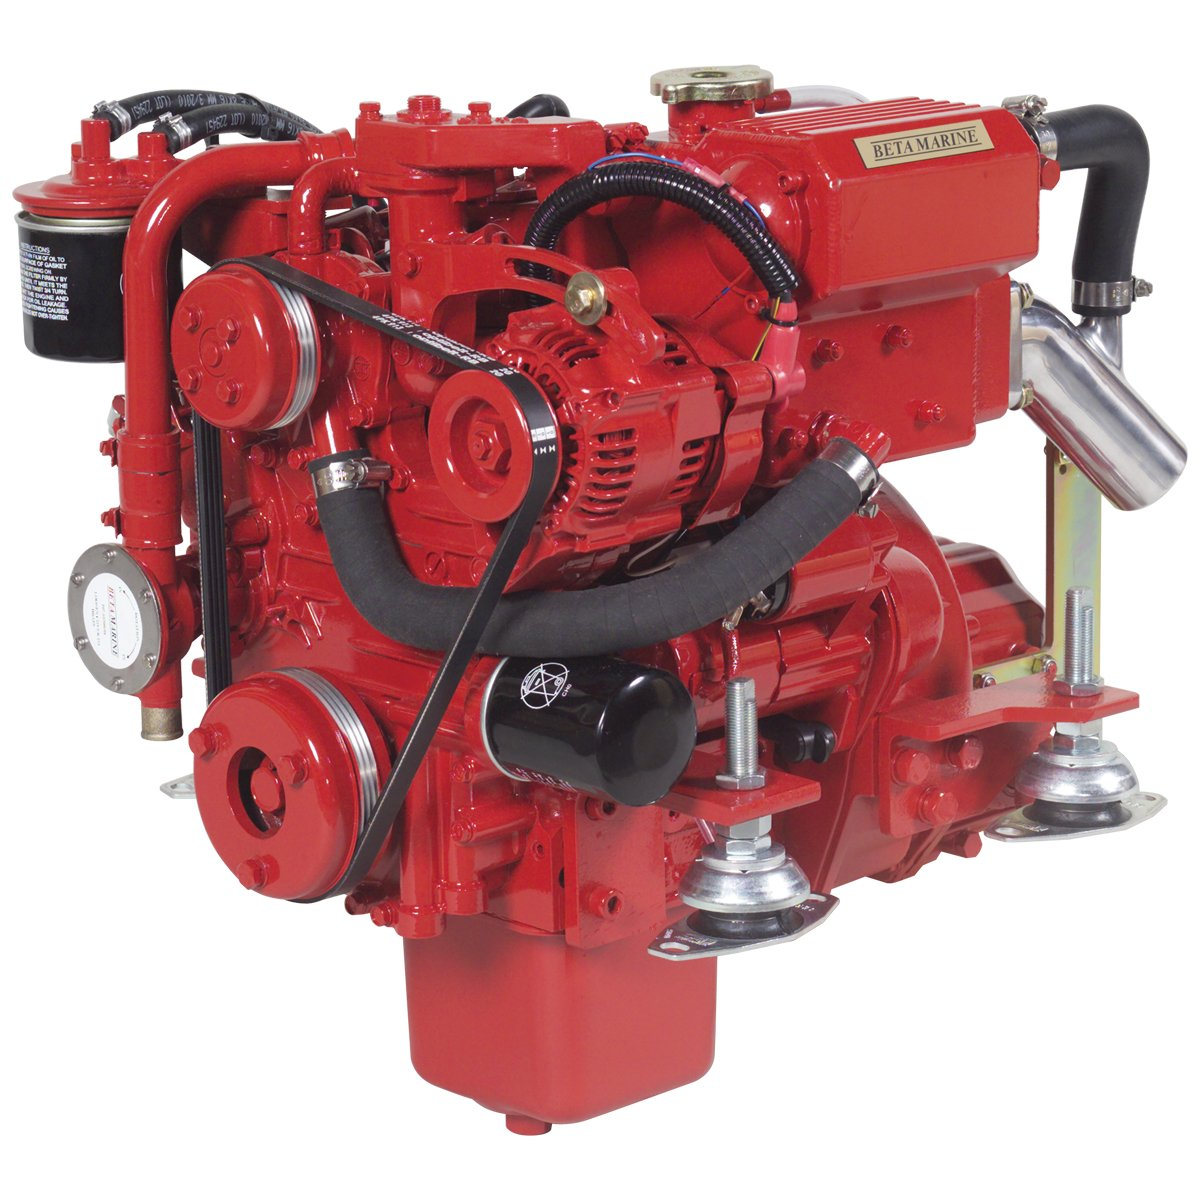 Beta Marine USA - marine diesel propulsion engines - Beta 10 heat exchanger engine